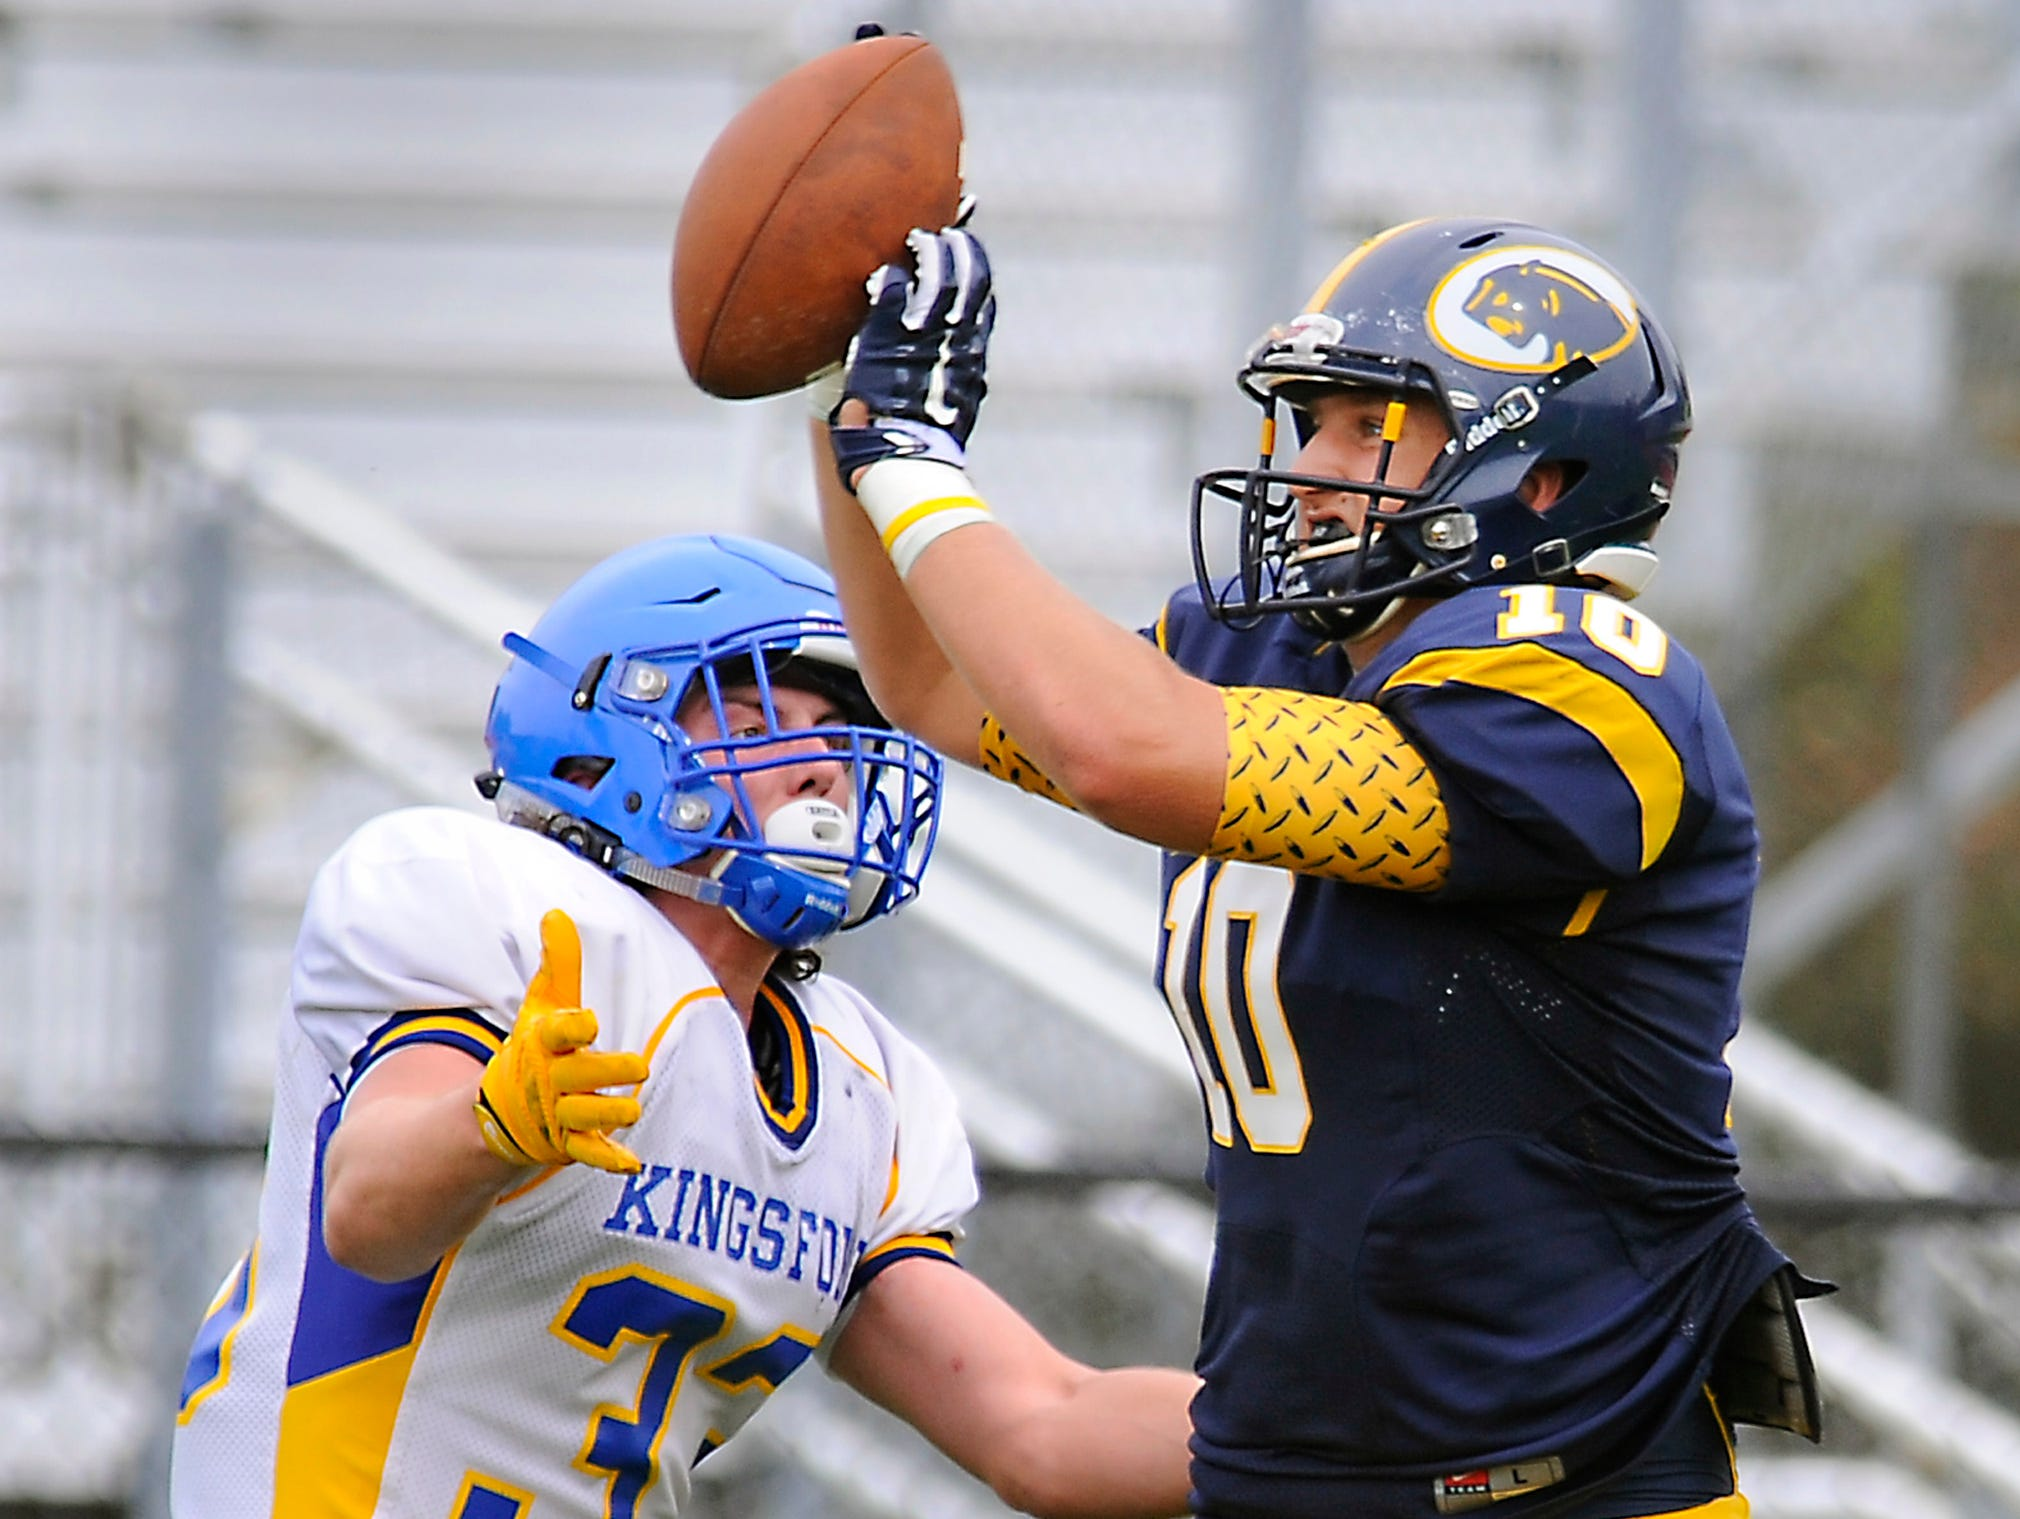 DeWitt tight end Evan Conn makes a fingertip catch on a pass from quarterback Will Nagel for a first down past Kingsford's Sam Santi Thursday 9/3/2015. First of a two-picture series.